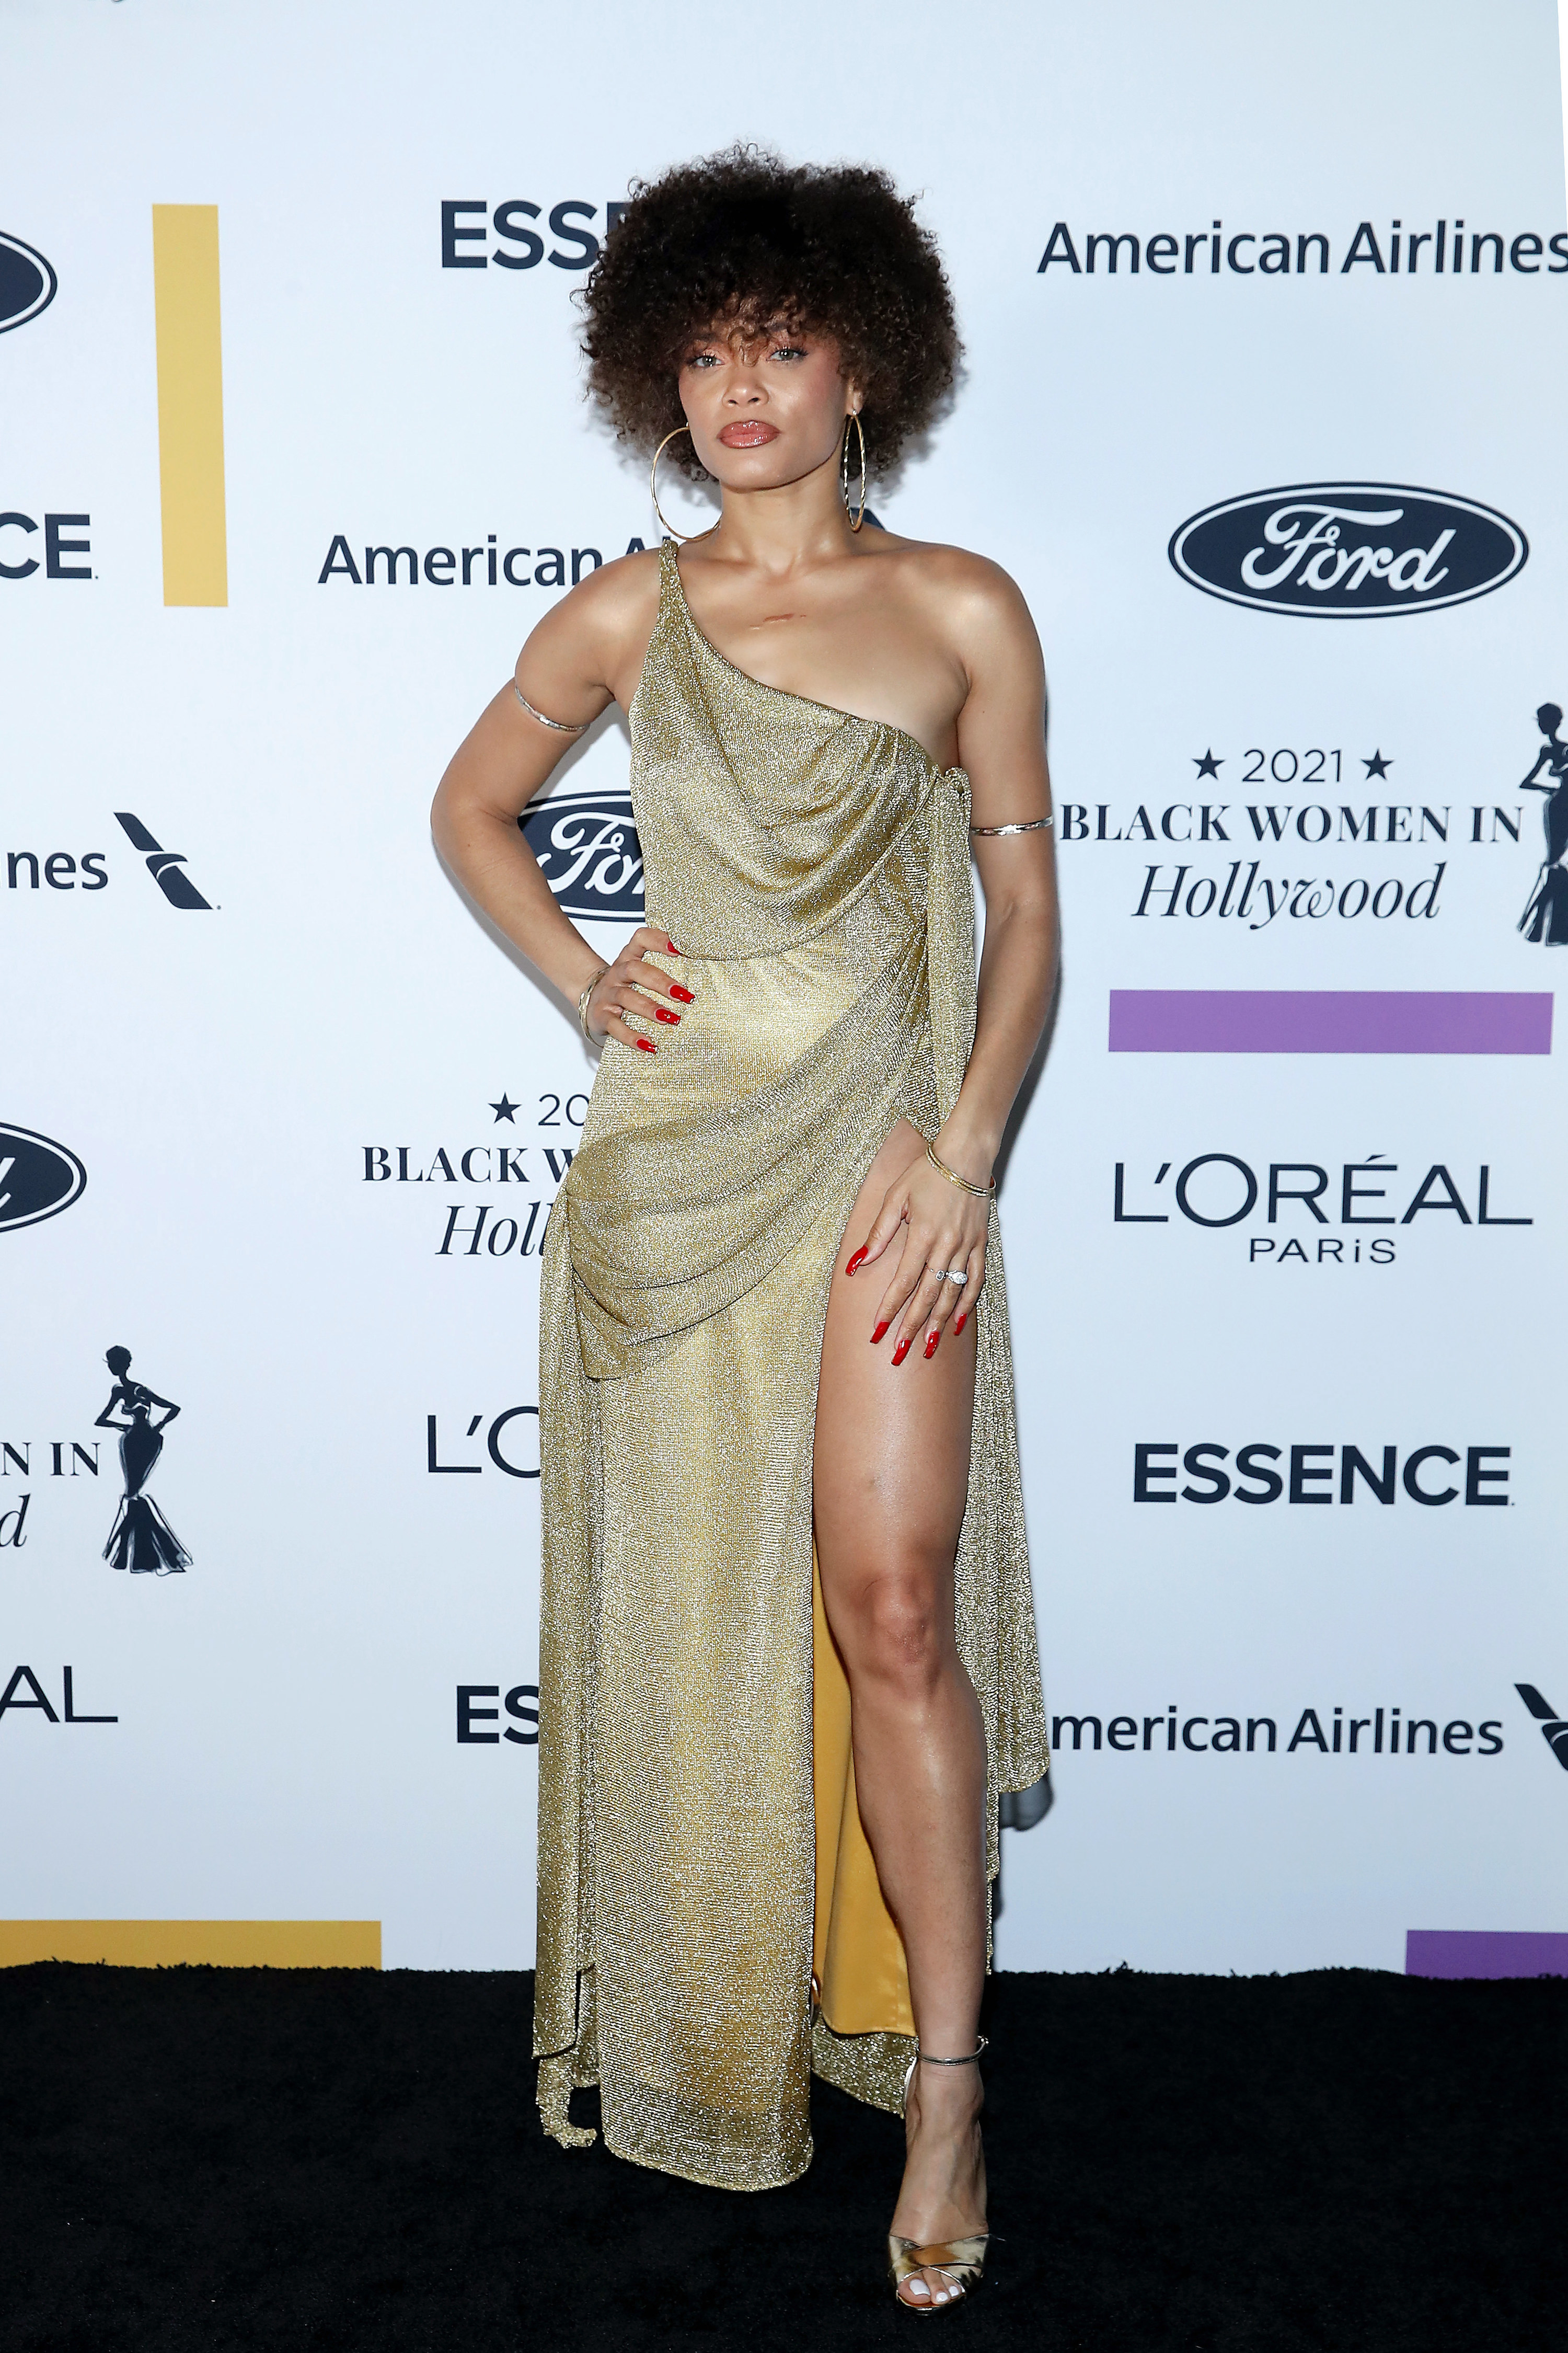 Andra wears a shimmering gold gown with one shoulder and a thigh high split